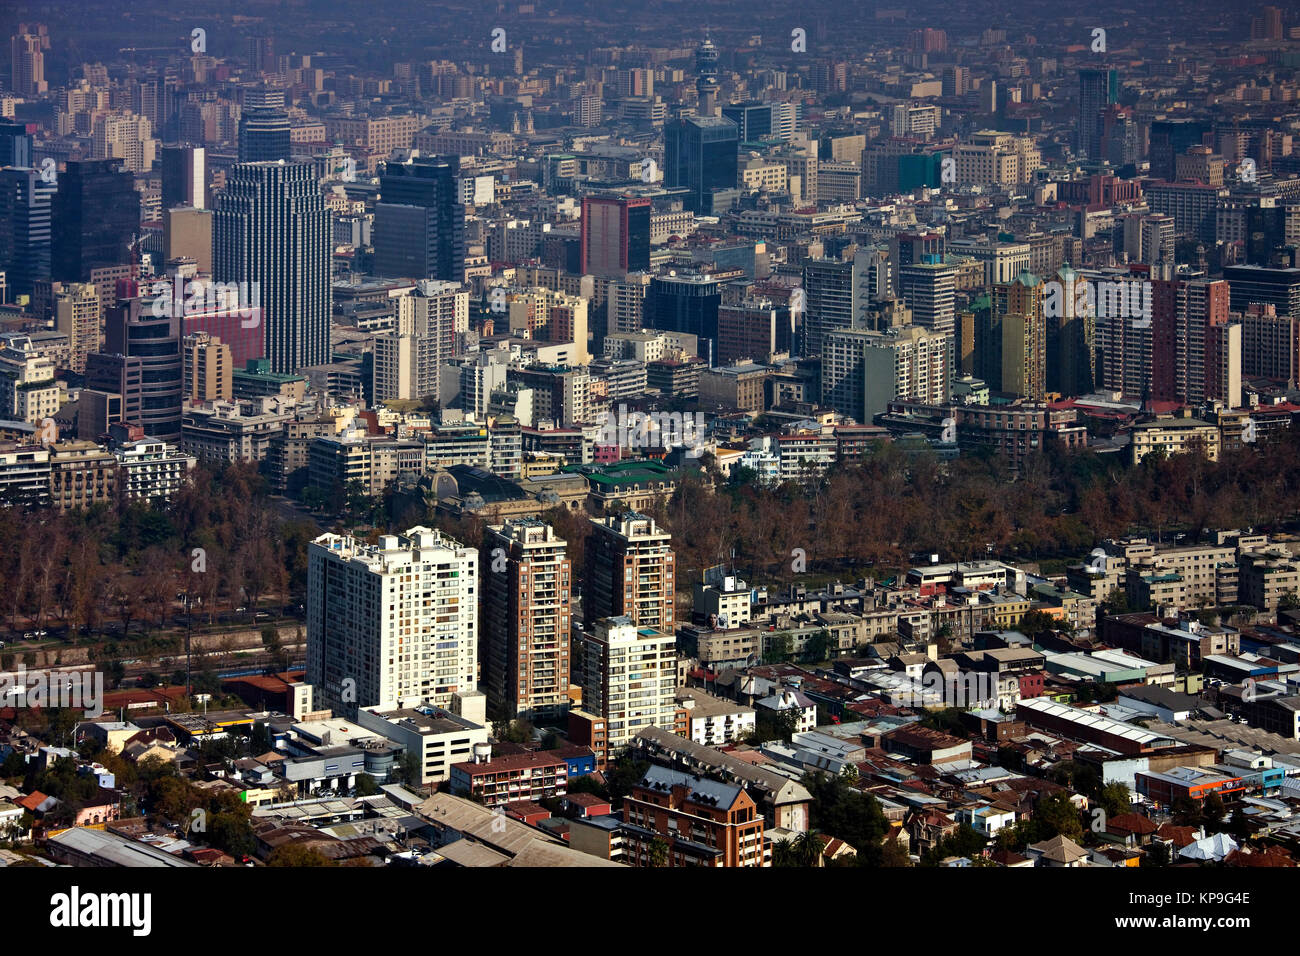 High level view of the city of Santiago in central Chile, South America. - Stock Image